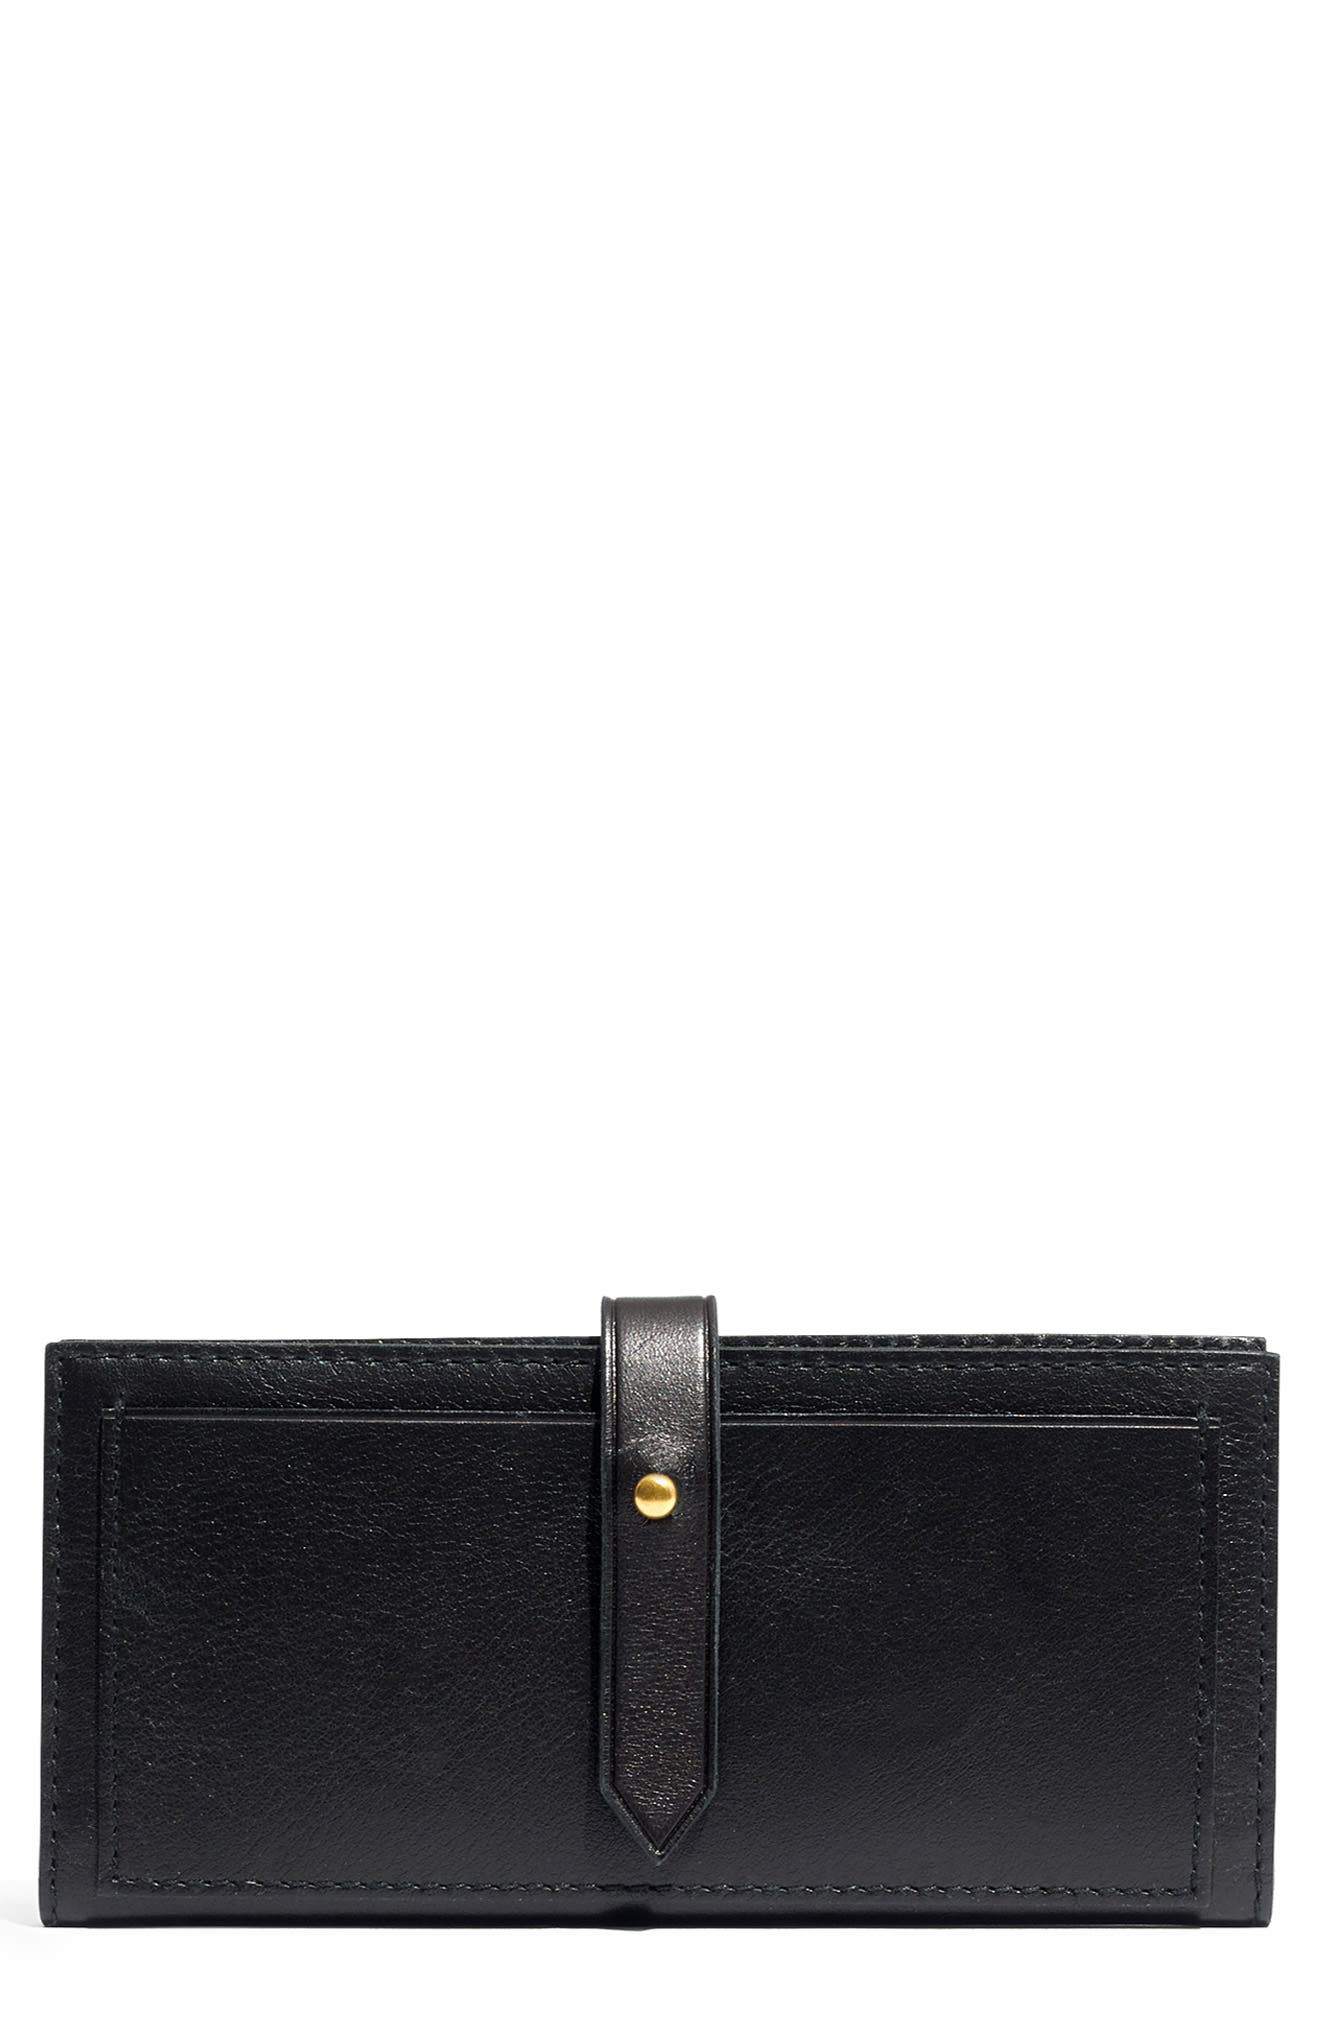 MADEWELL, New Post Leather Wallet, Main thumbnail 1, color, TRUE BLACK